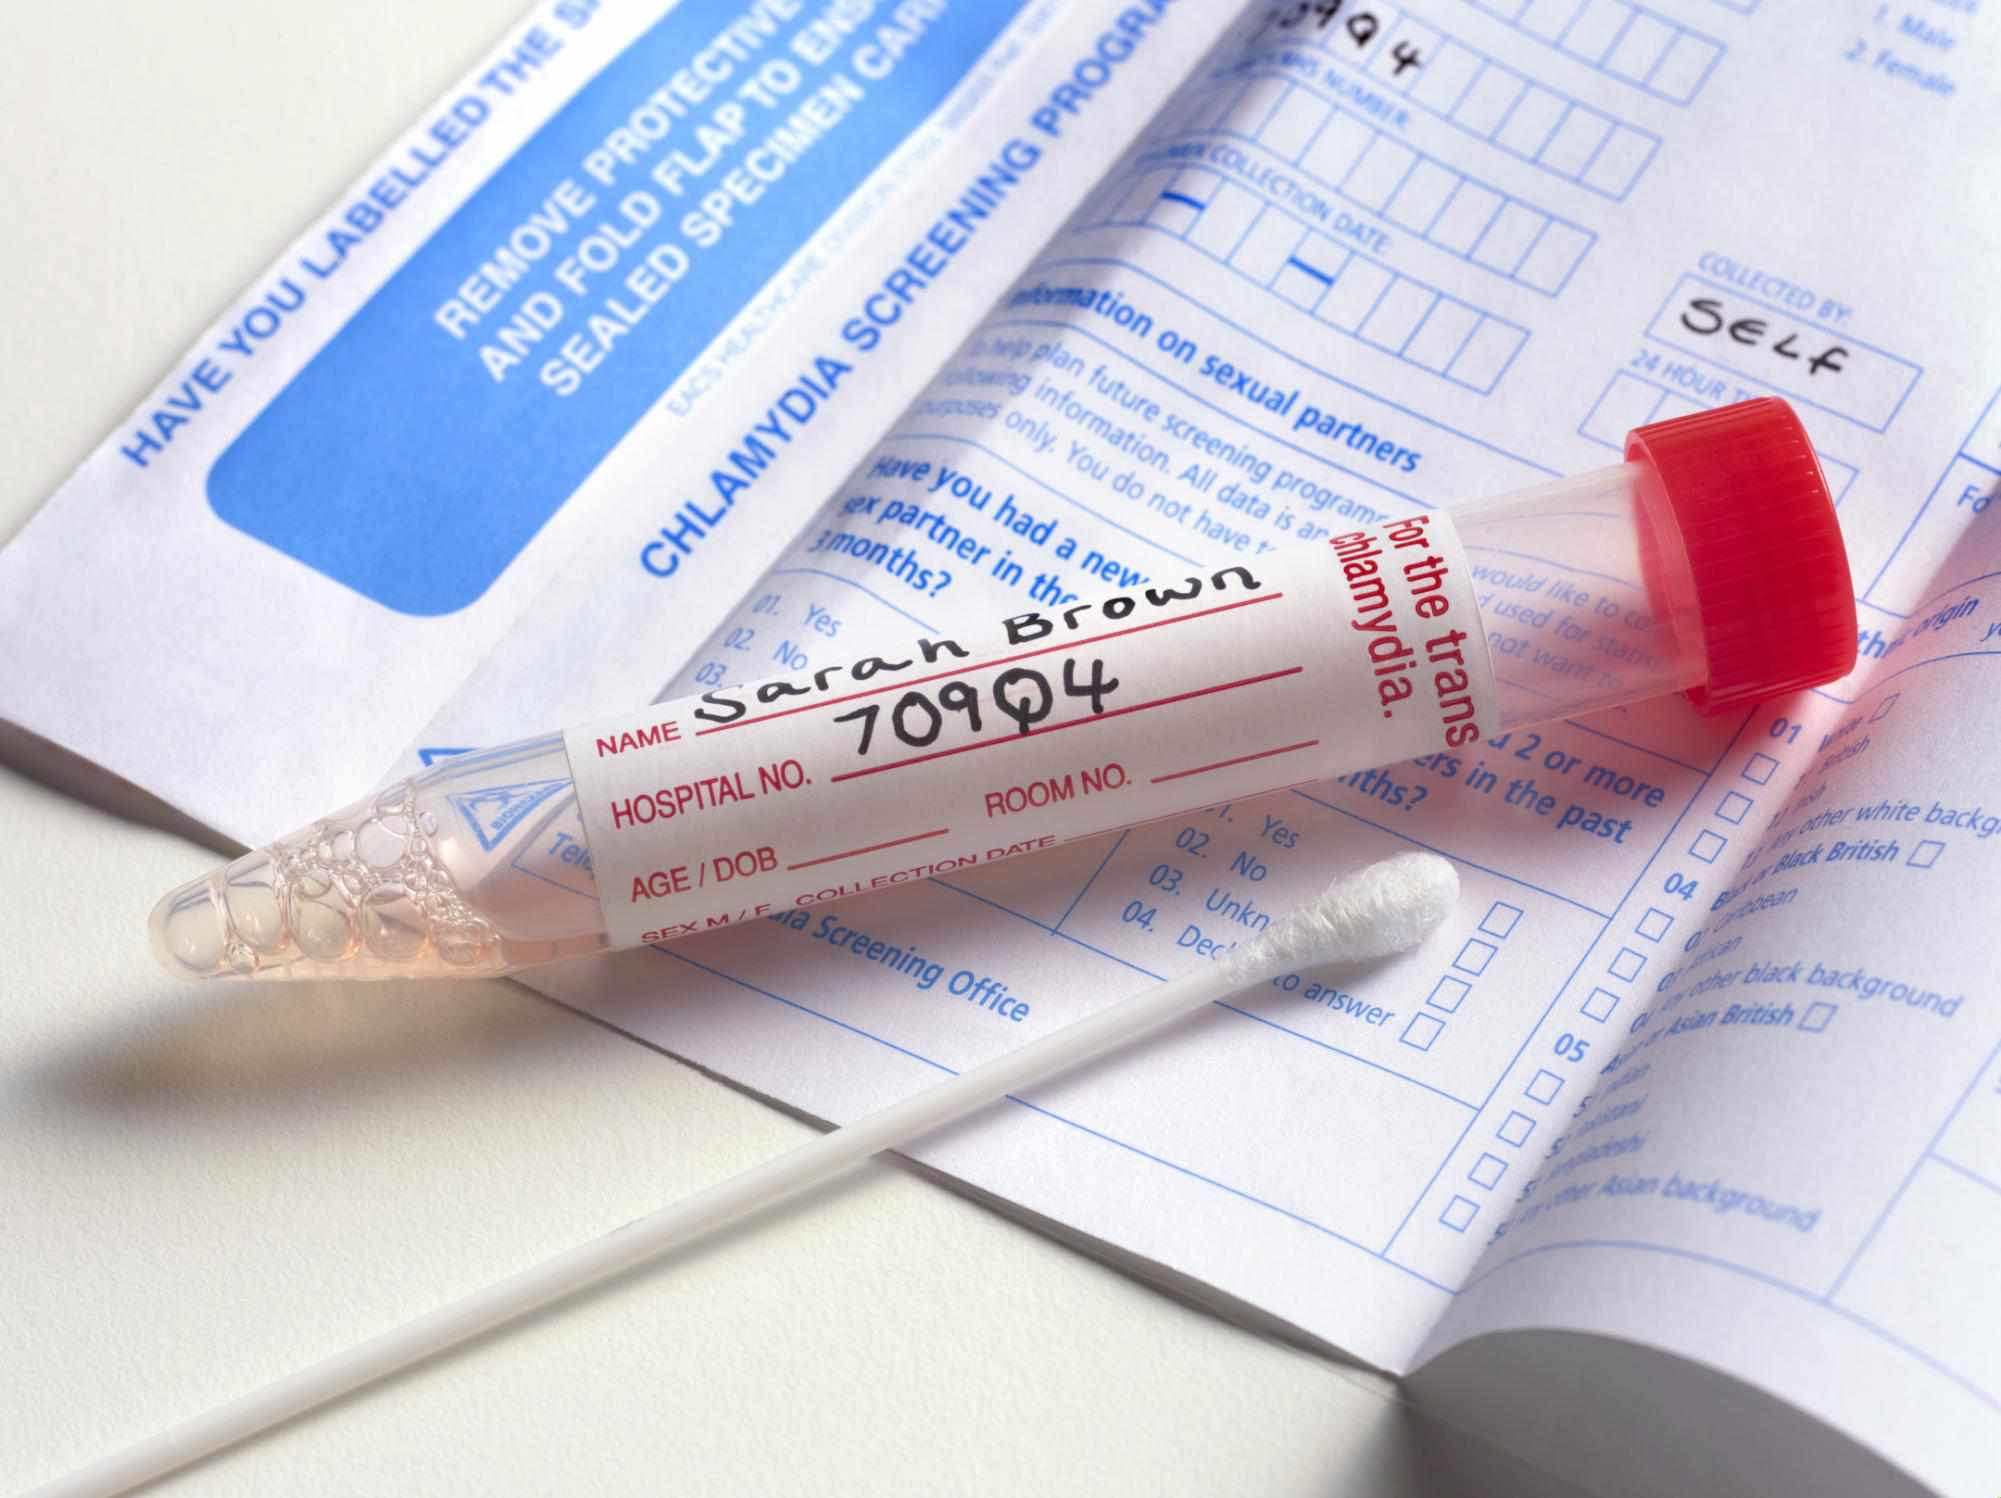 How Long Should I Wait for STD Testing?